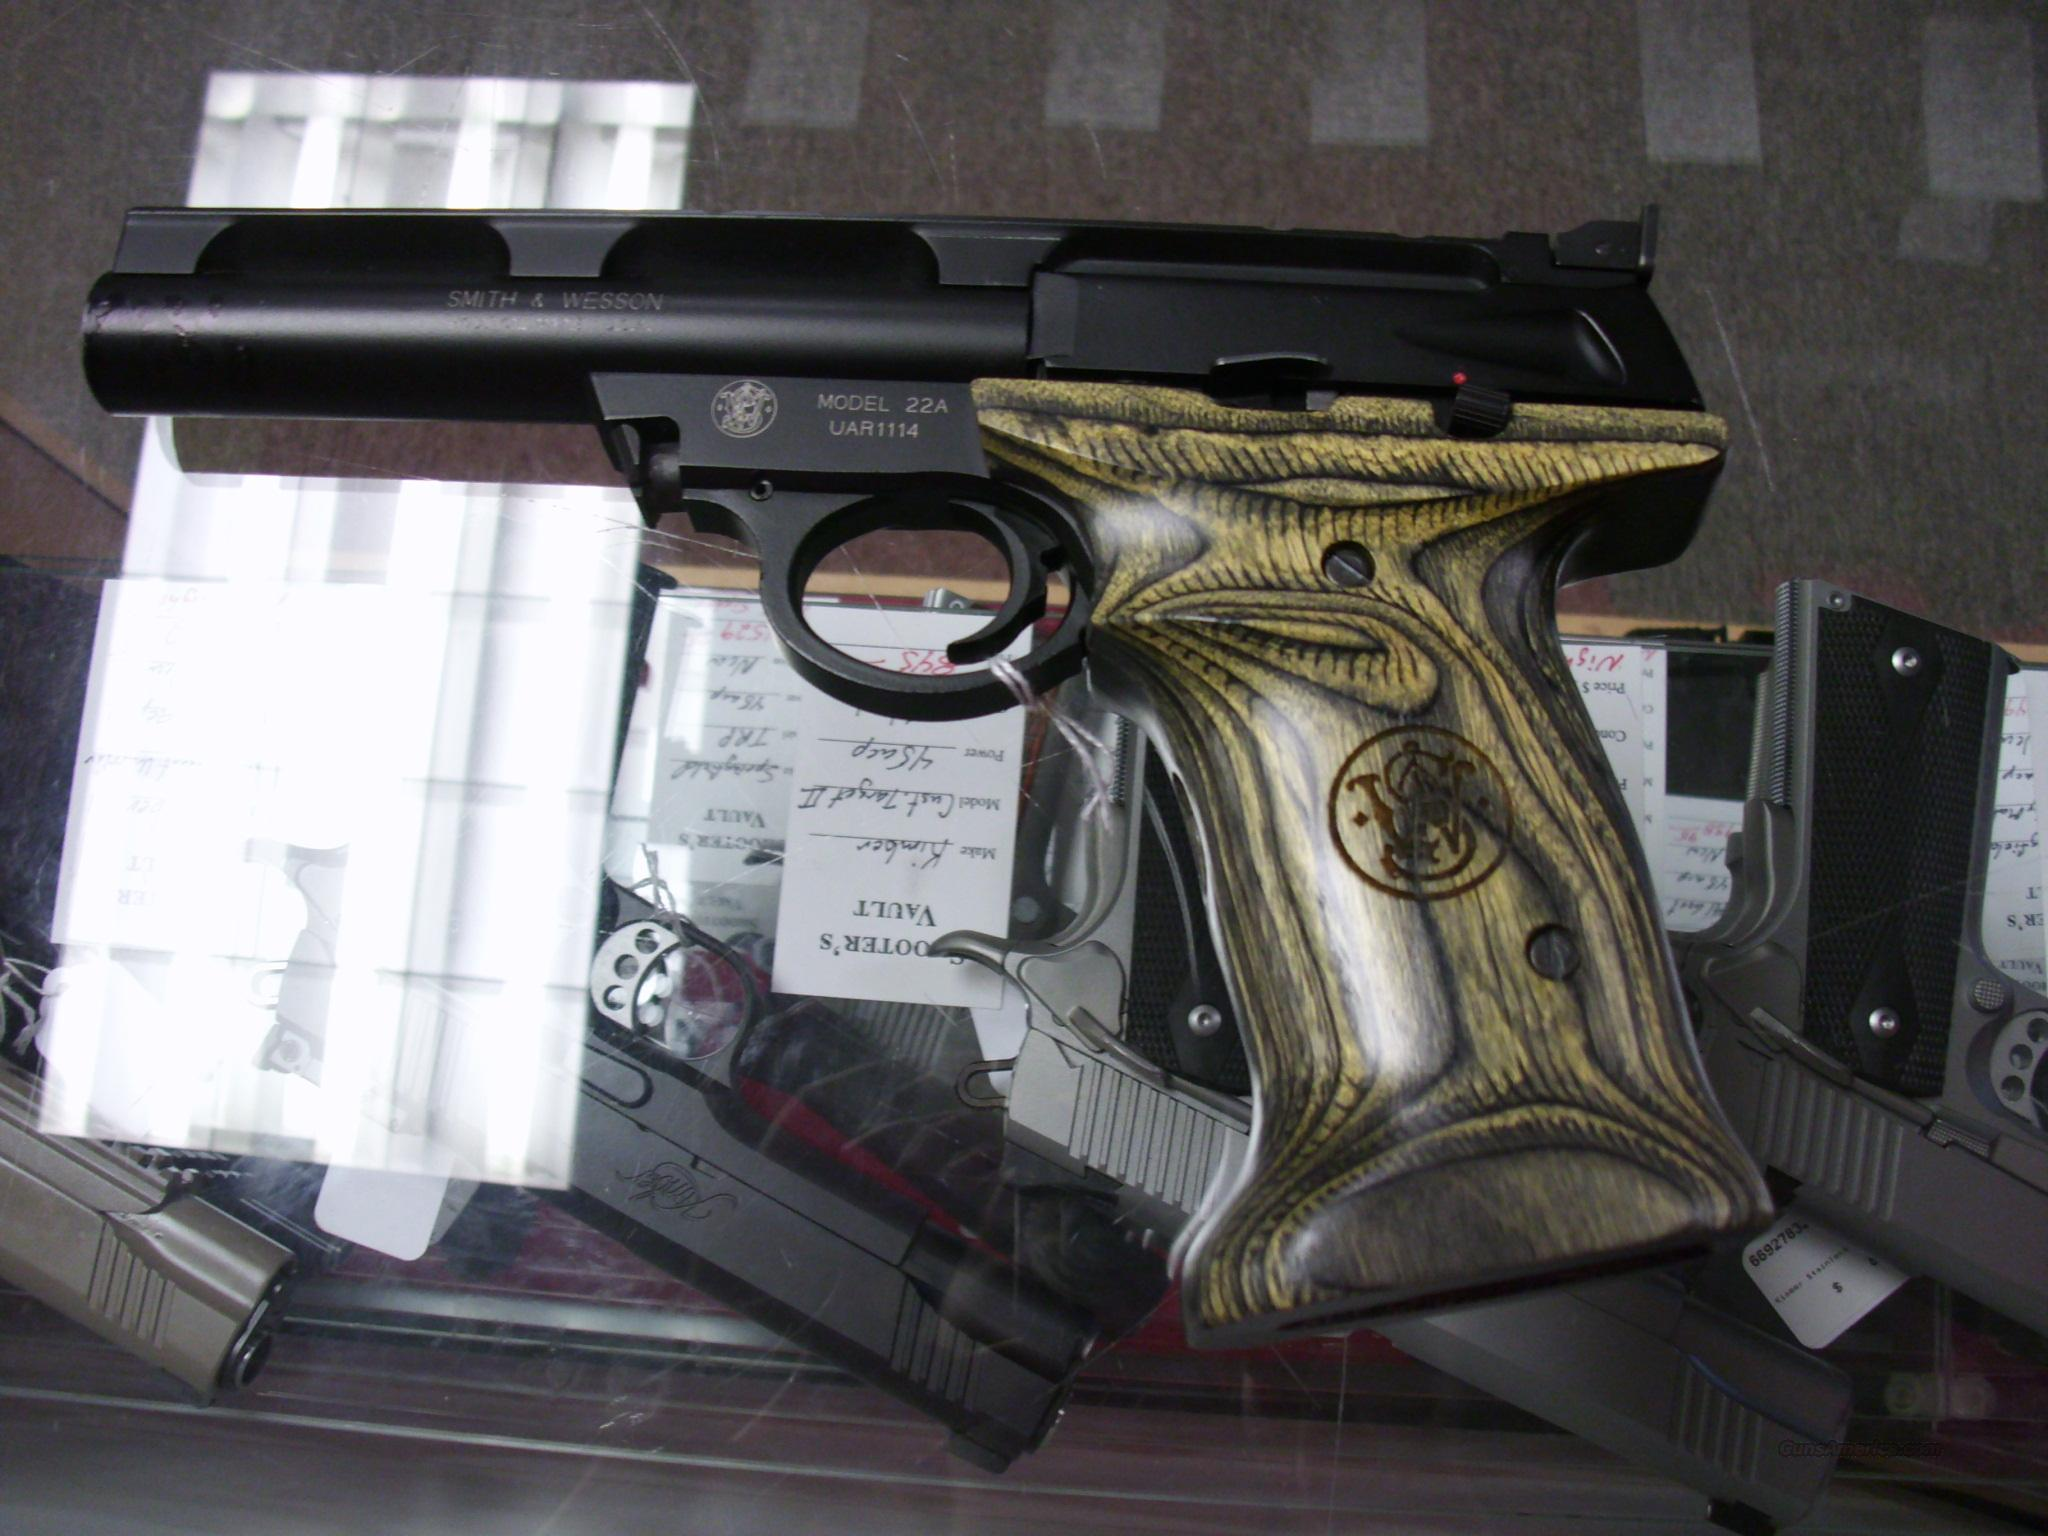 Smith & Wesson 22A 22LR Used  Guns > Pistols > Smith & Wesson Pistols - Autos > .22 Autos